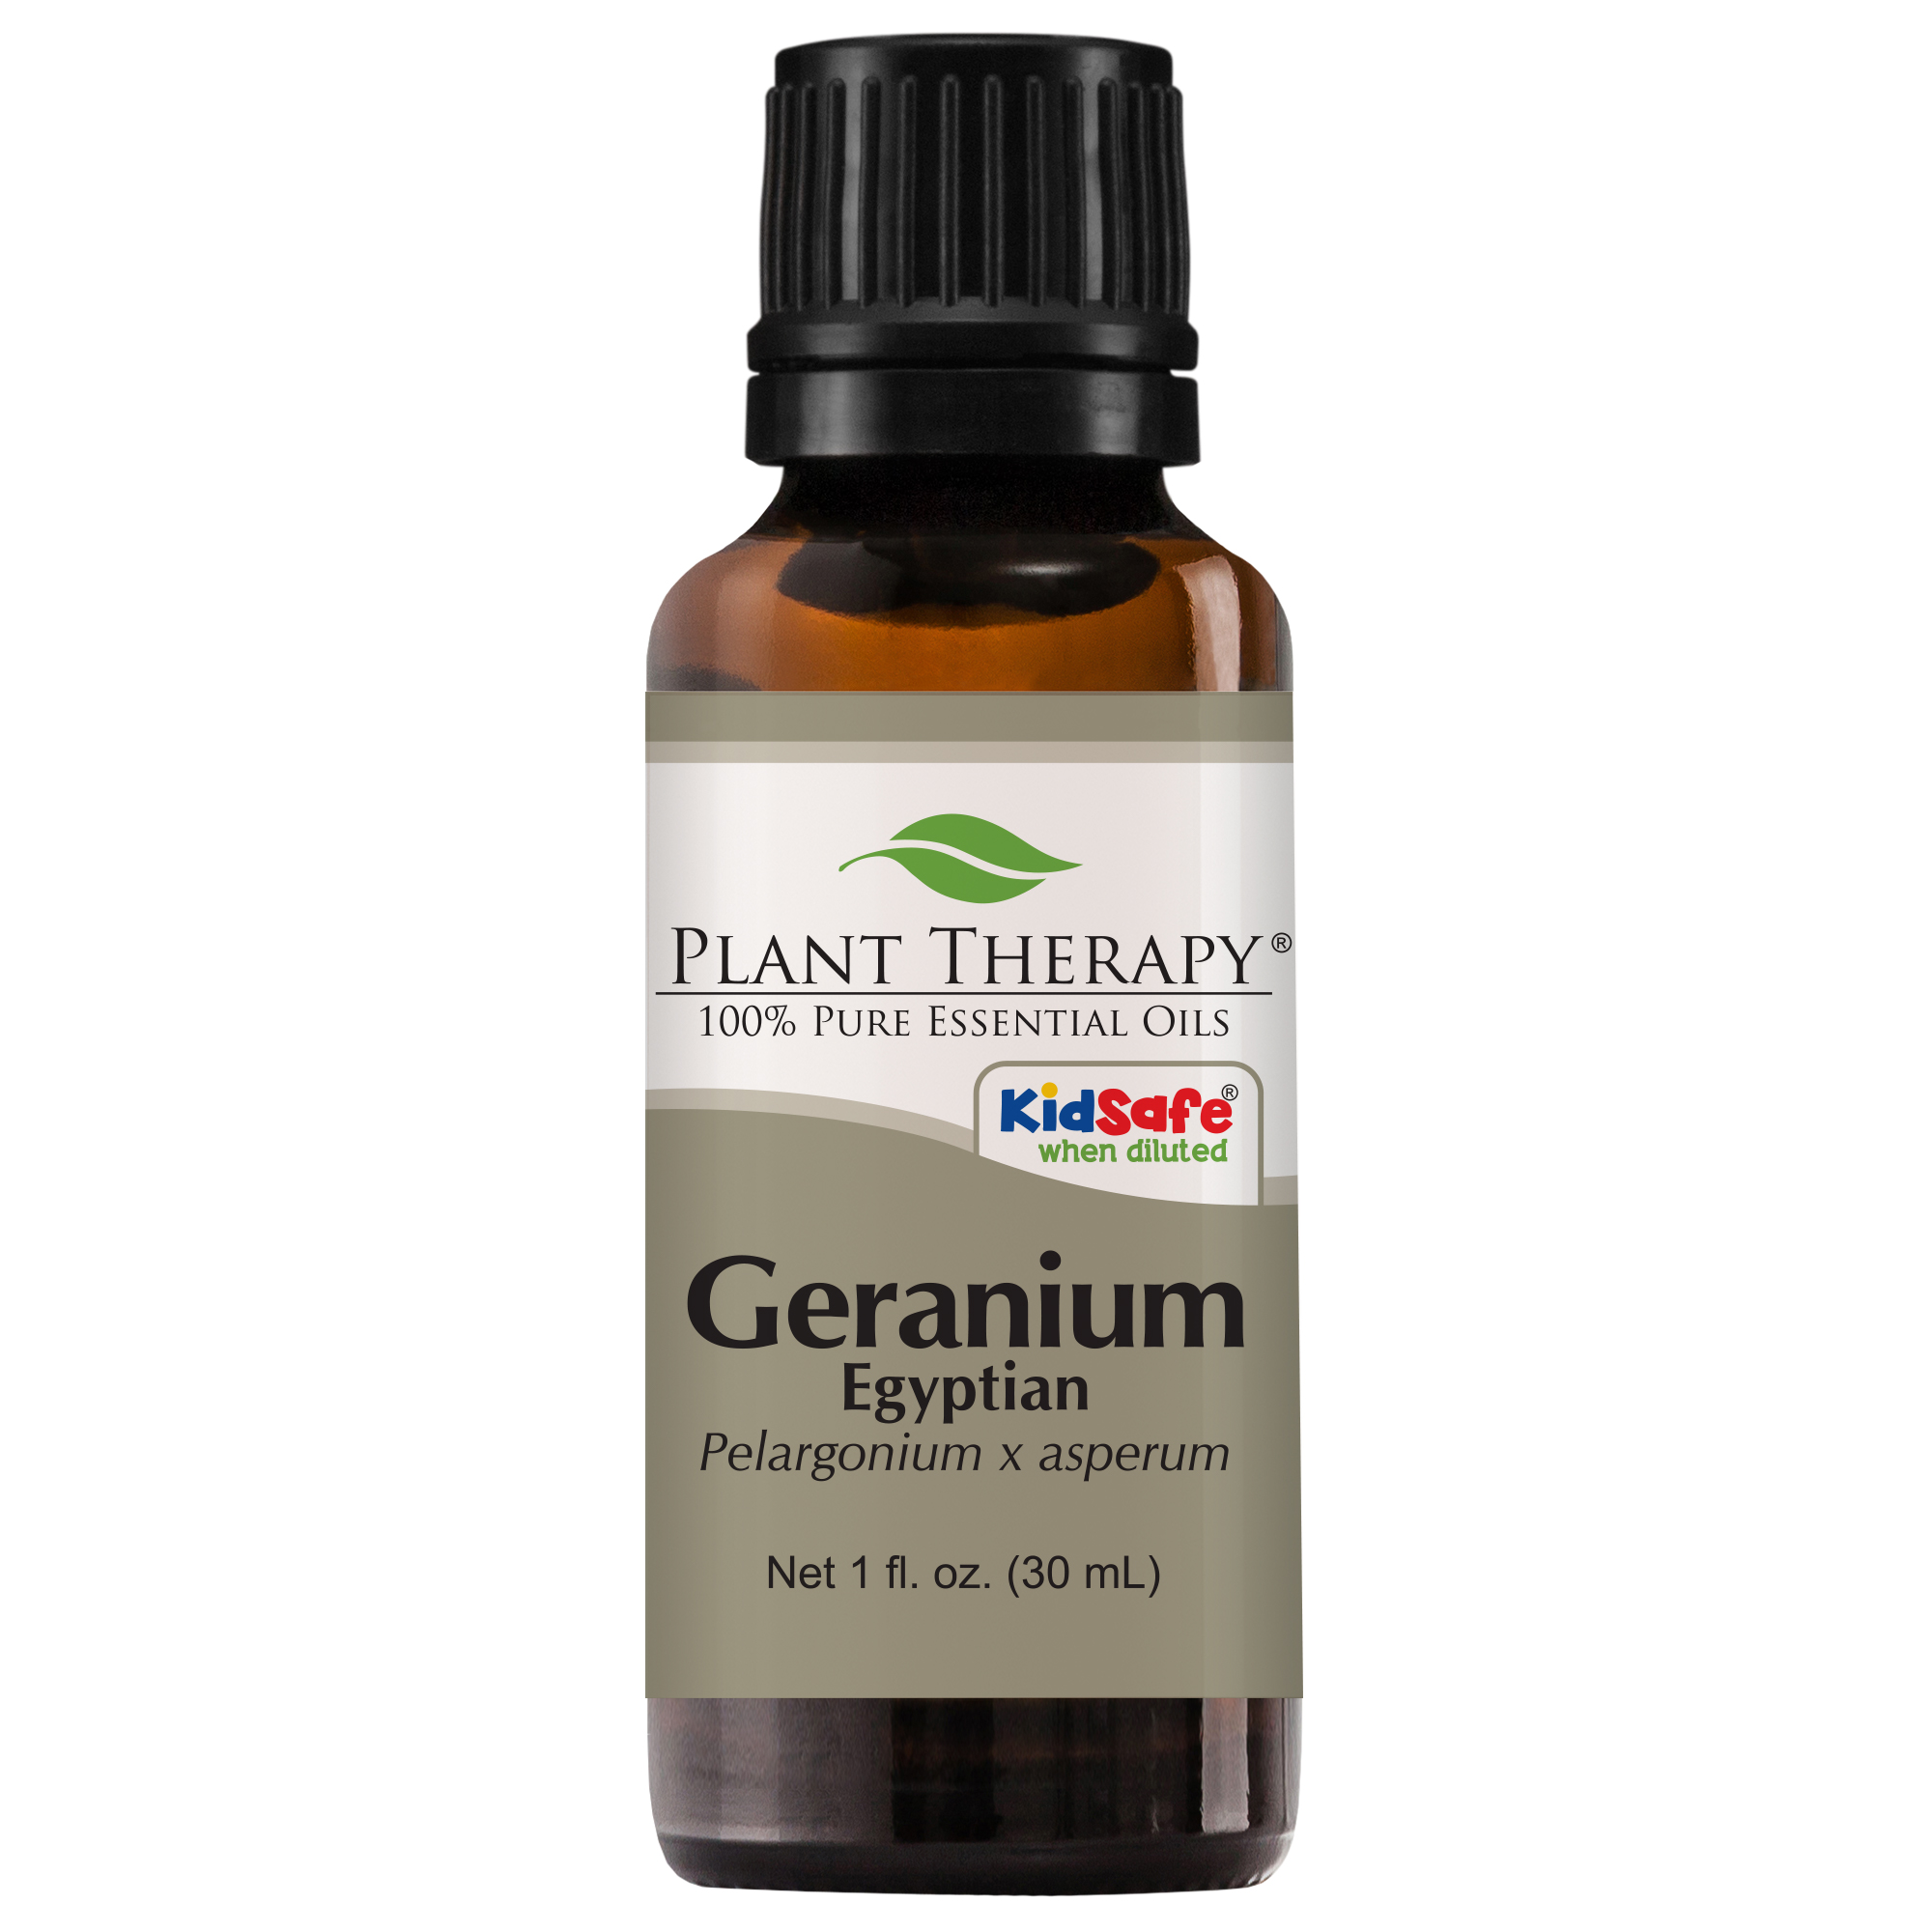 Plant Therapy Geranium Egyptian Essential Oil | 100% Pure, Undiluted, Natural Aromatherapy, Therapeutic Grade | 30 mL